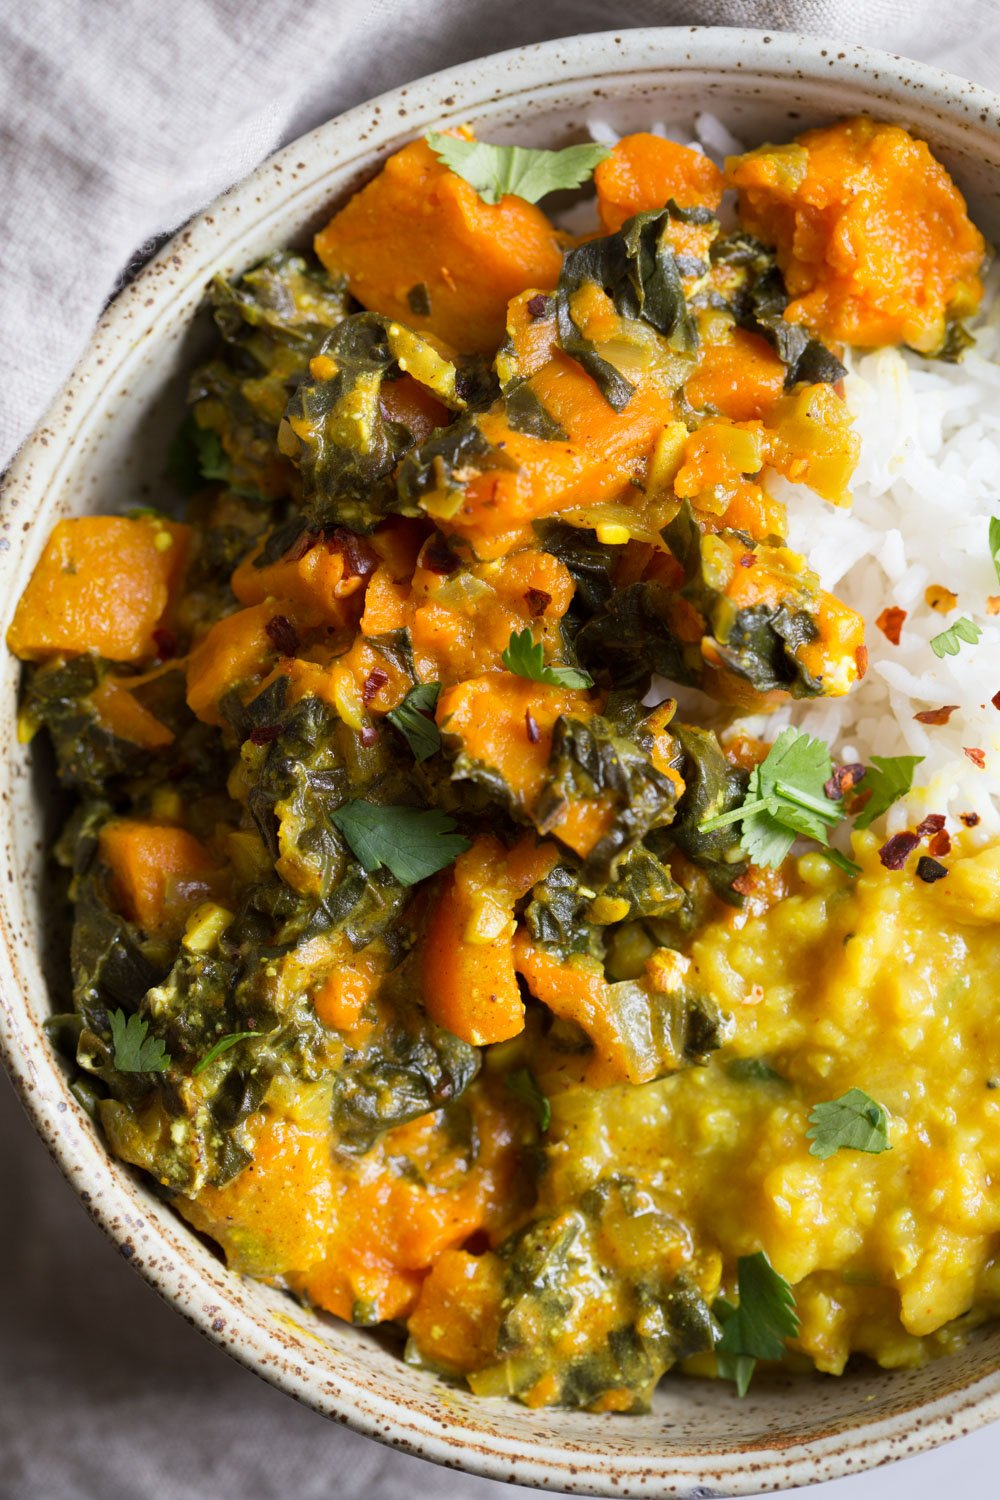 Instant Pot Saag Aloo with Chard and Sweet Potatoes. Sweet Potato Chard/Spinach curry. Serve this easy side with dals or curries or add to a bowl. #Vegan #soyfree #Glutenfree #Recipe easily #nutfree #veganricha2| VeganRicha.com